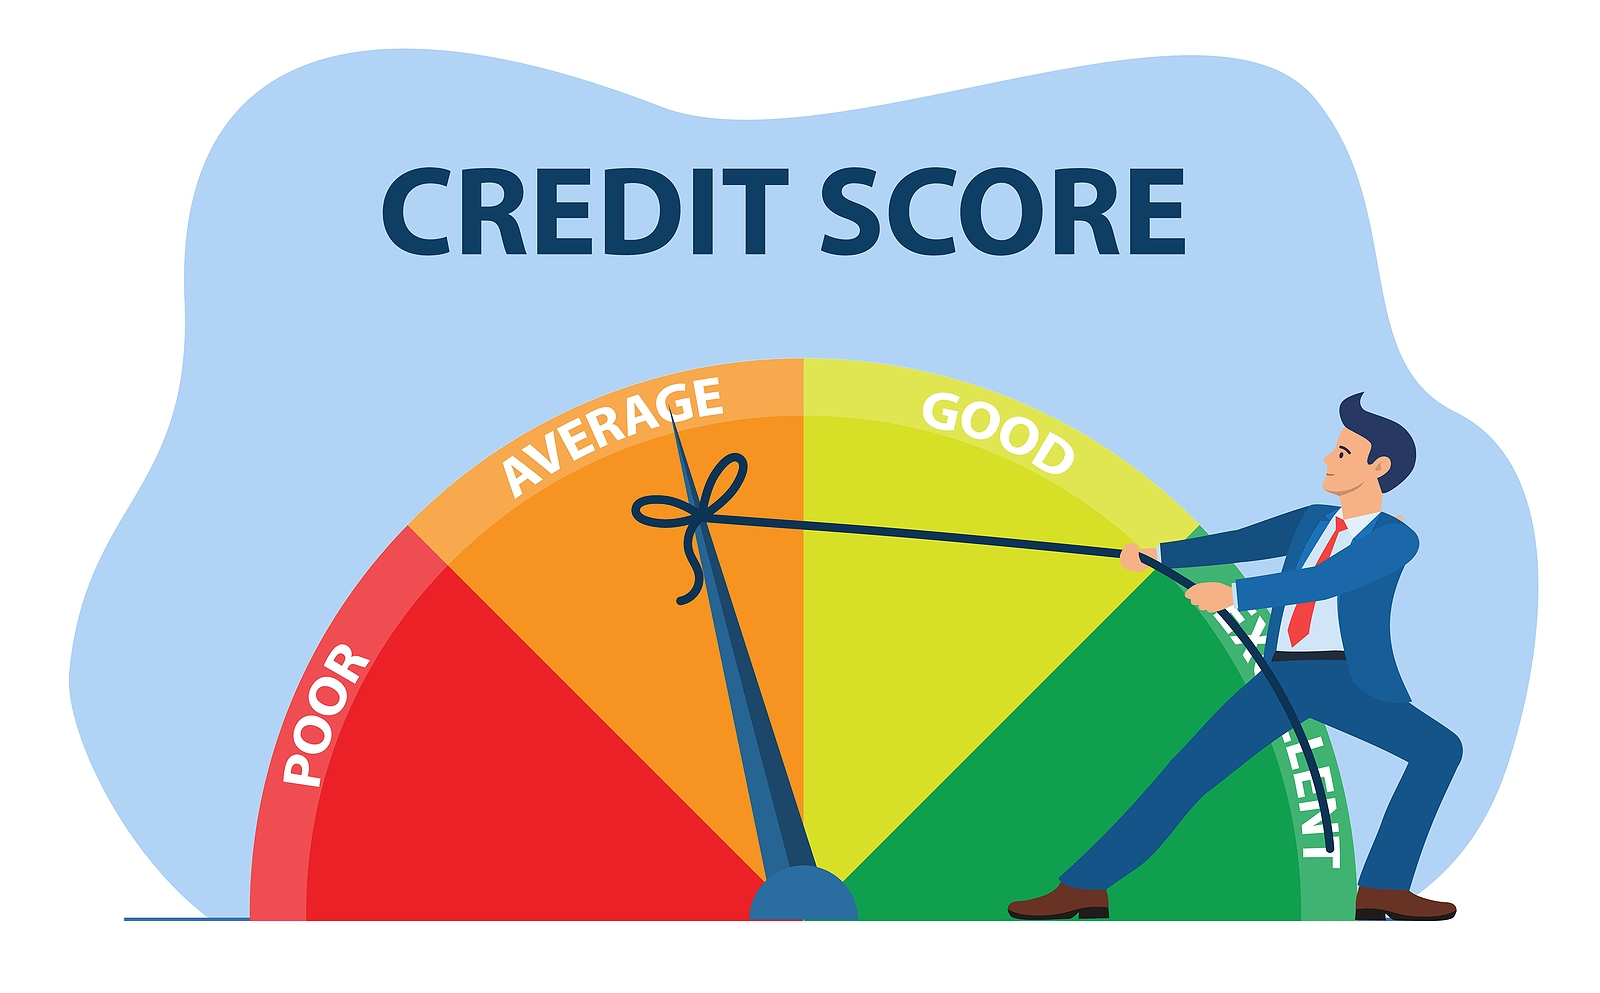 7 Possible Reasons Your Credit Score Decreased